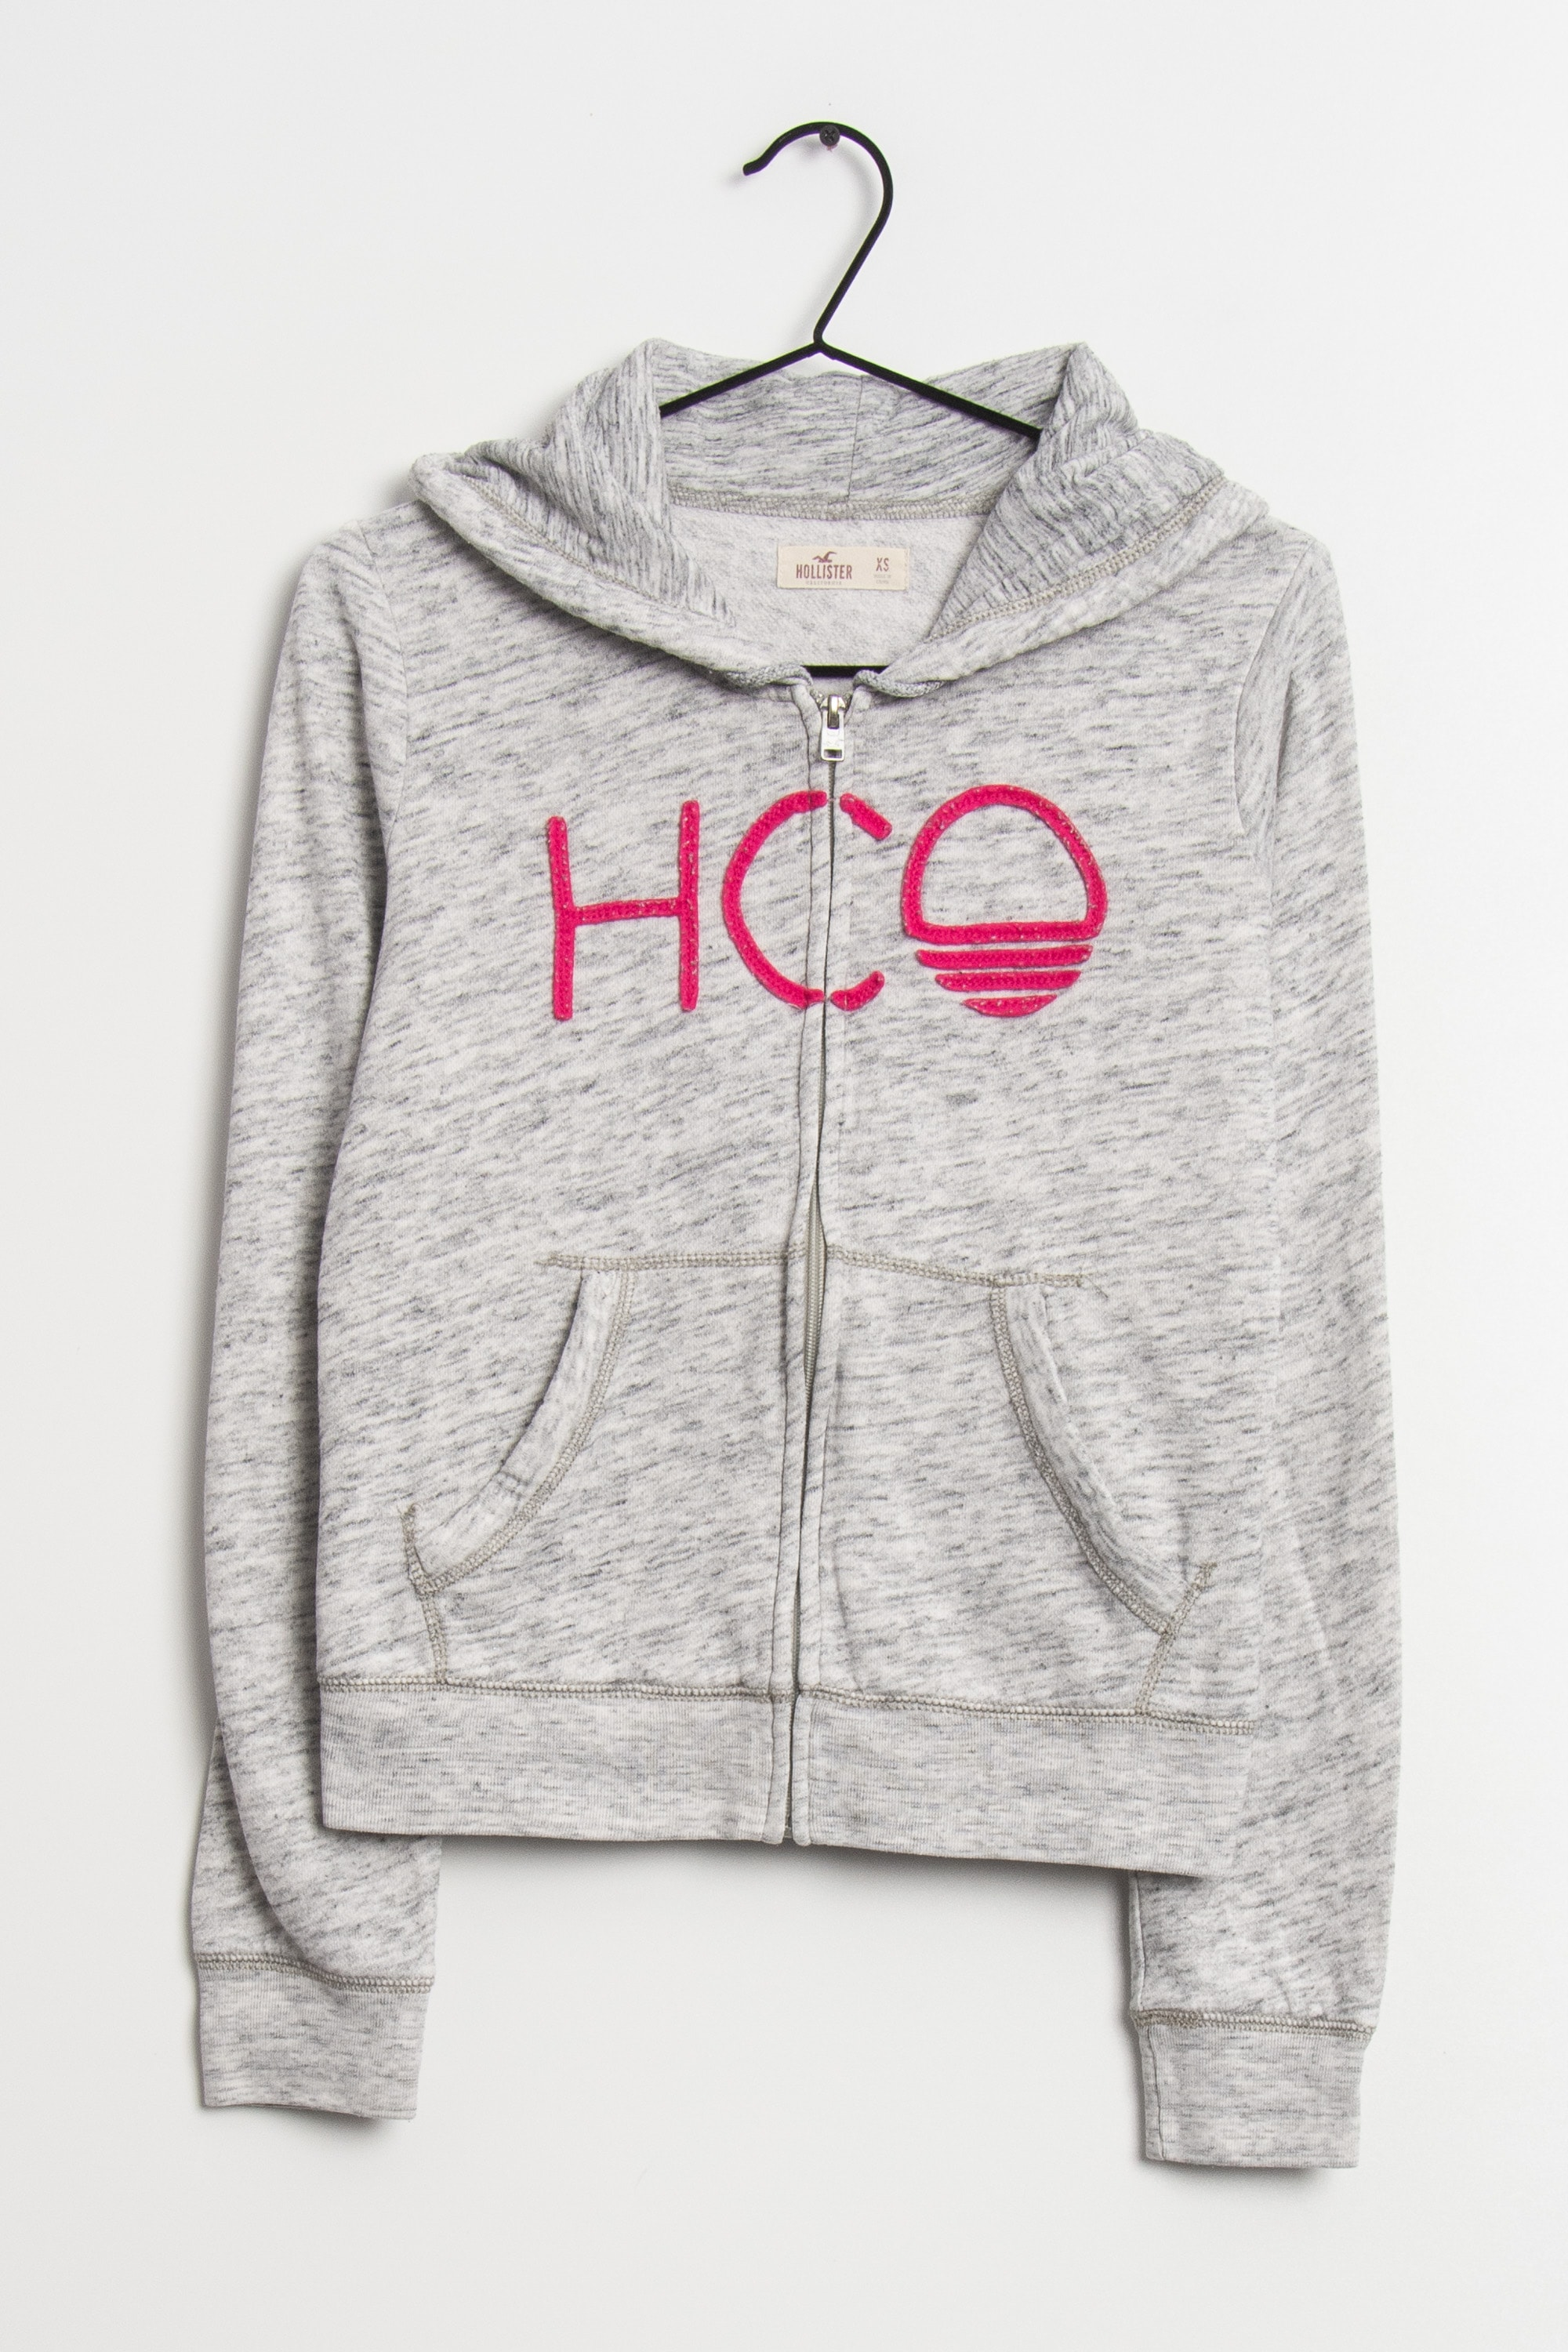 Hollister Co. Sweat / Fleece Grau Gr.XS